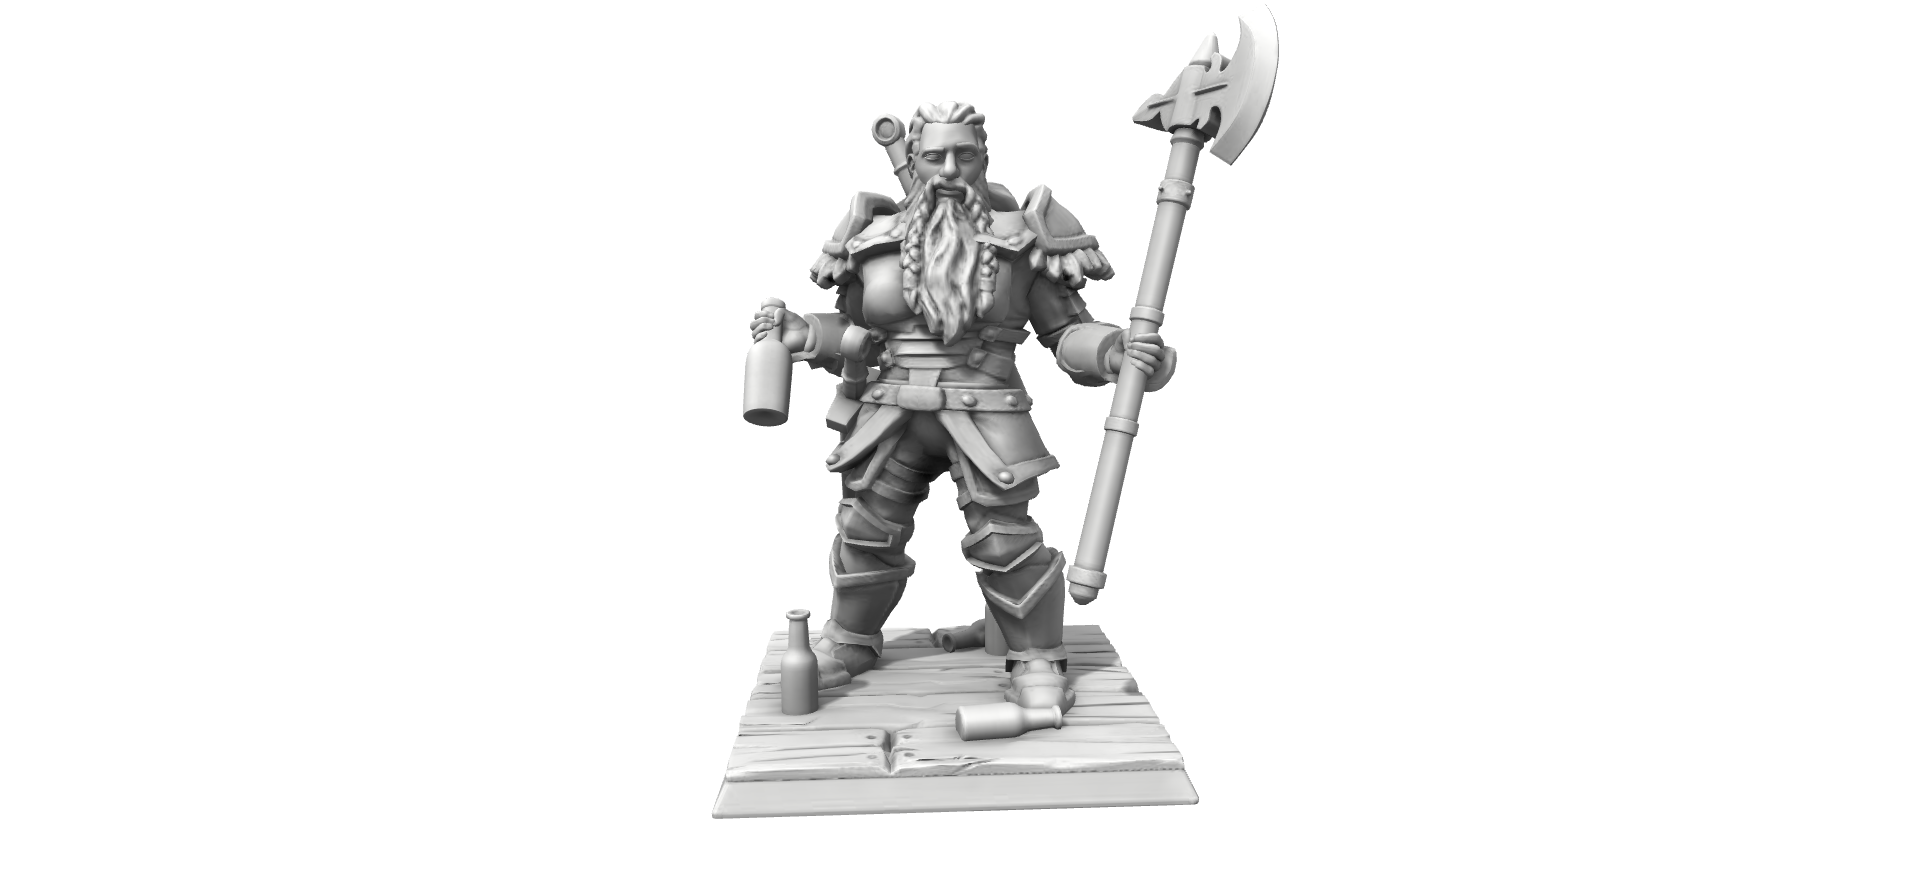 Galerie de Personnages 3D Hero Forge Herofo12